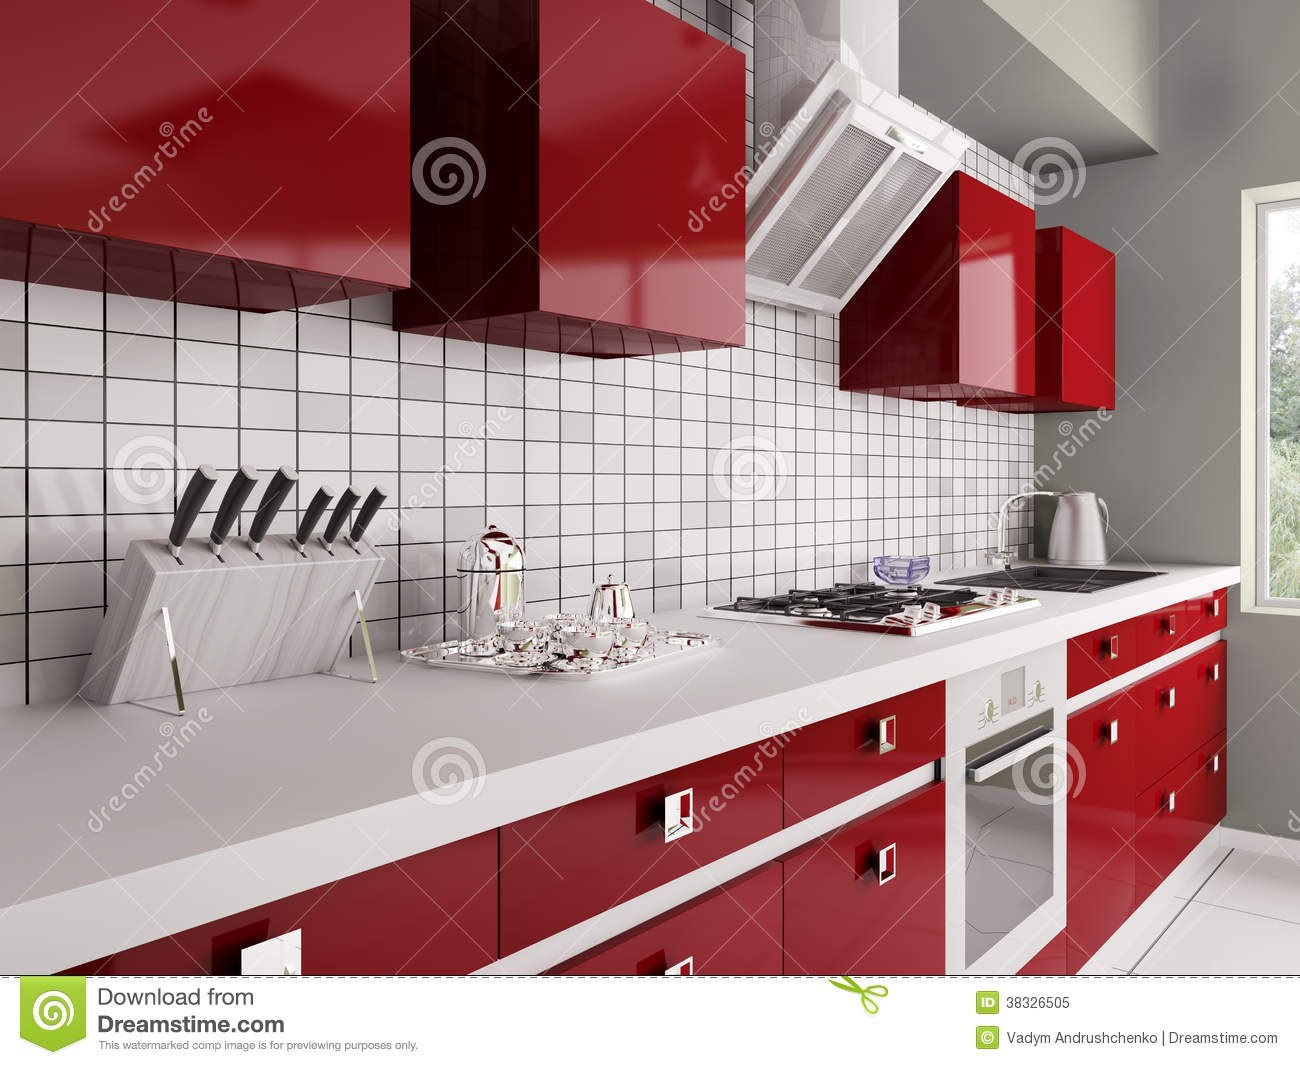 Modern red kitchen interior 3d stock illustration - Piastrelle cucina rosse ...